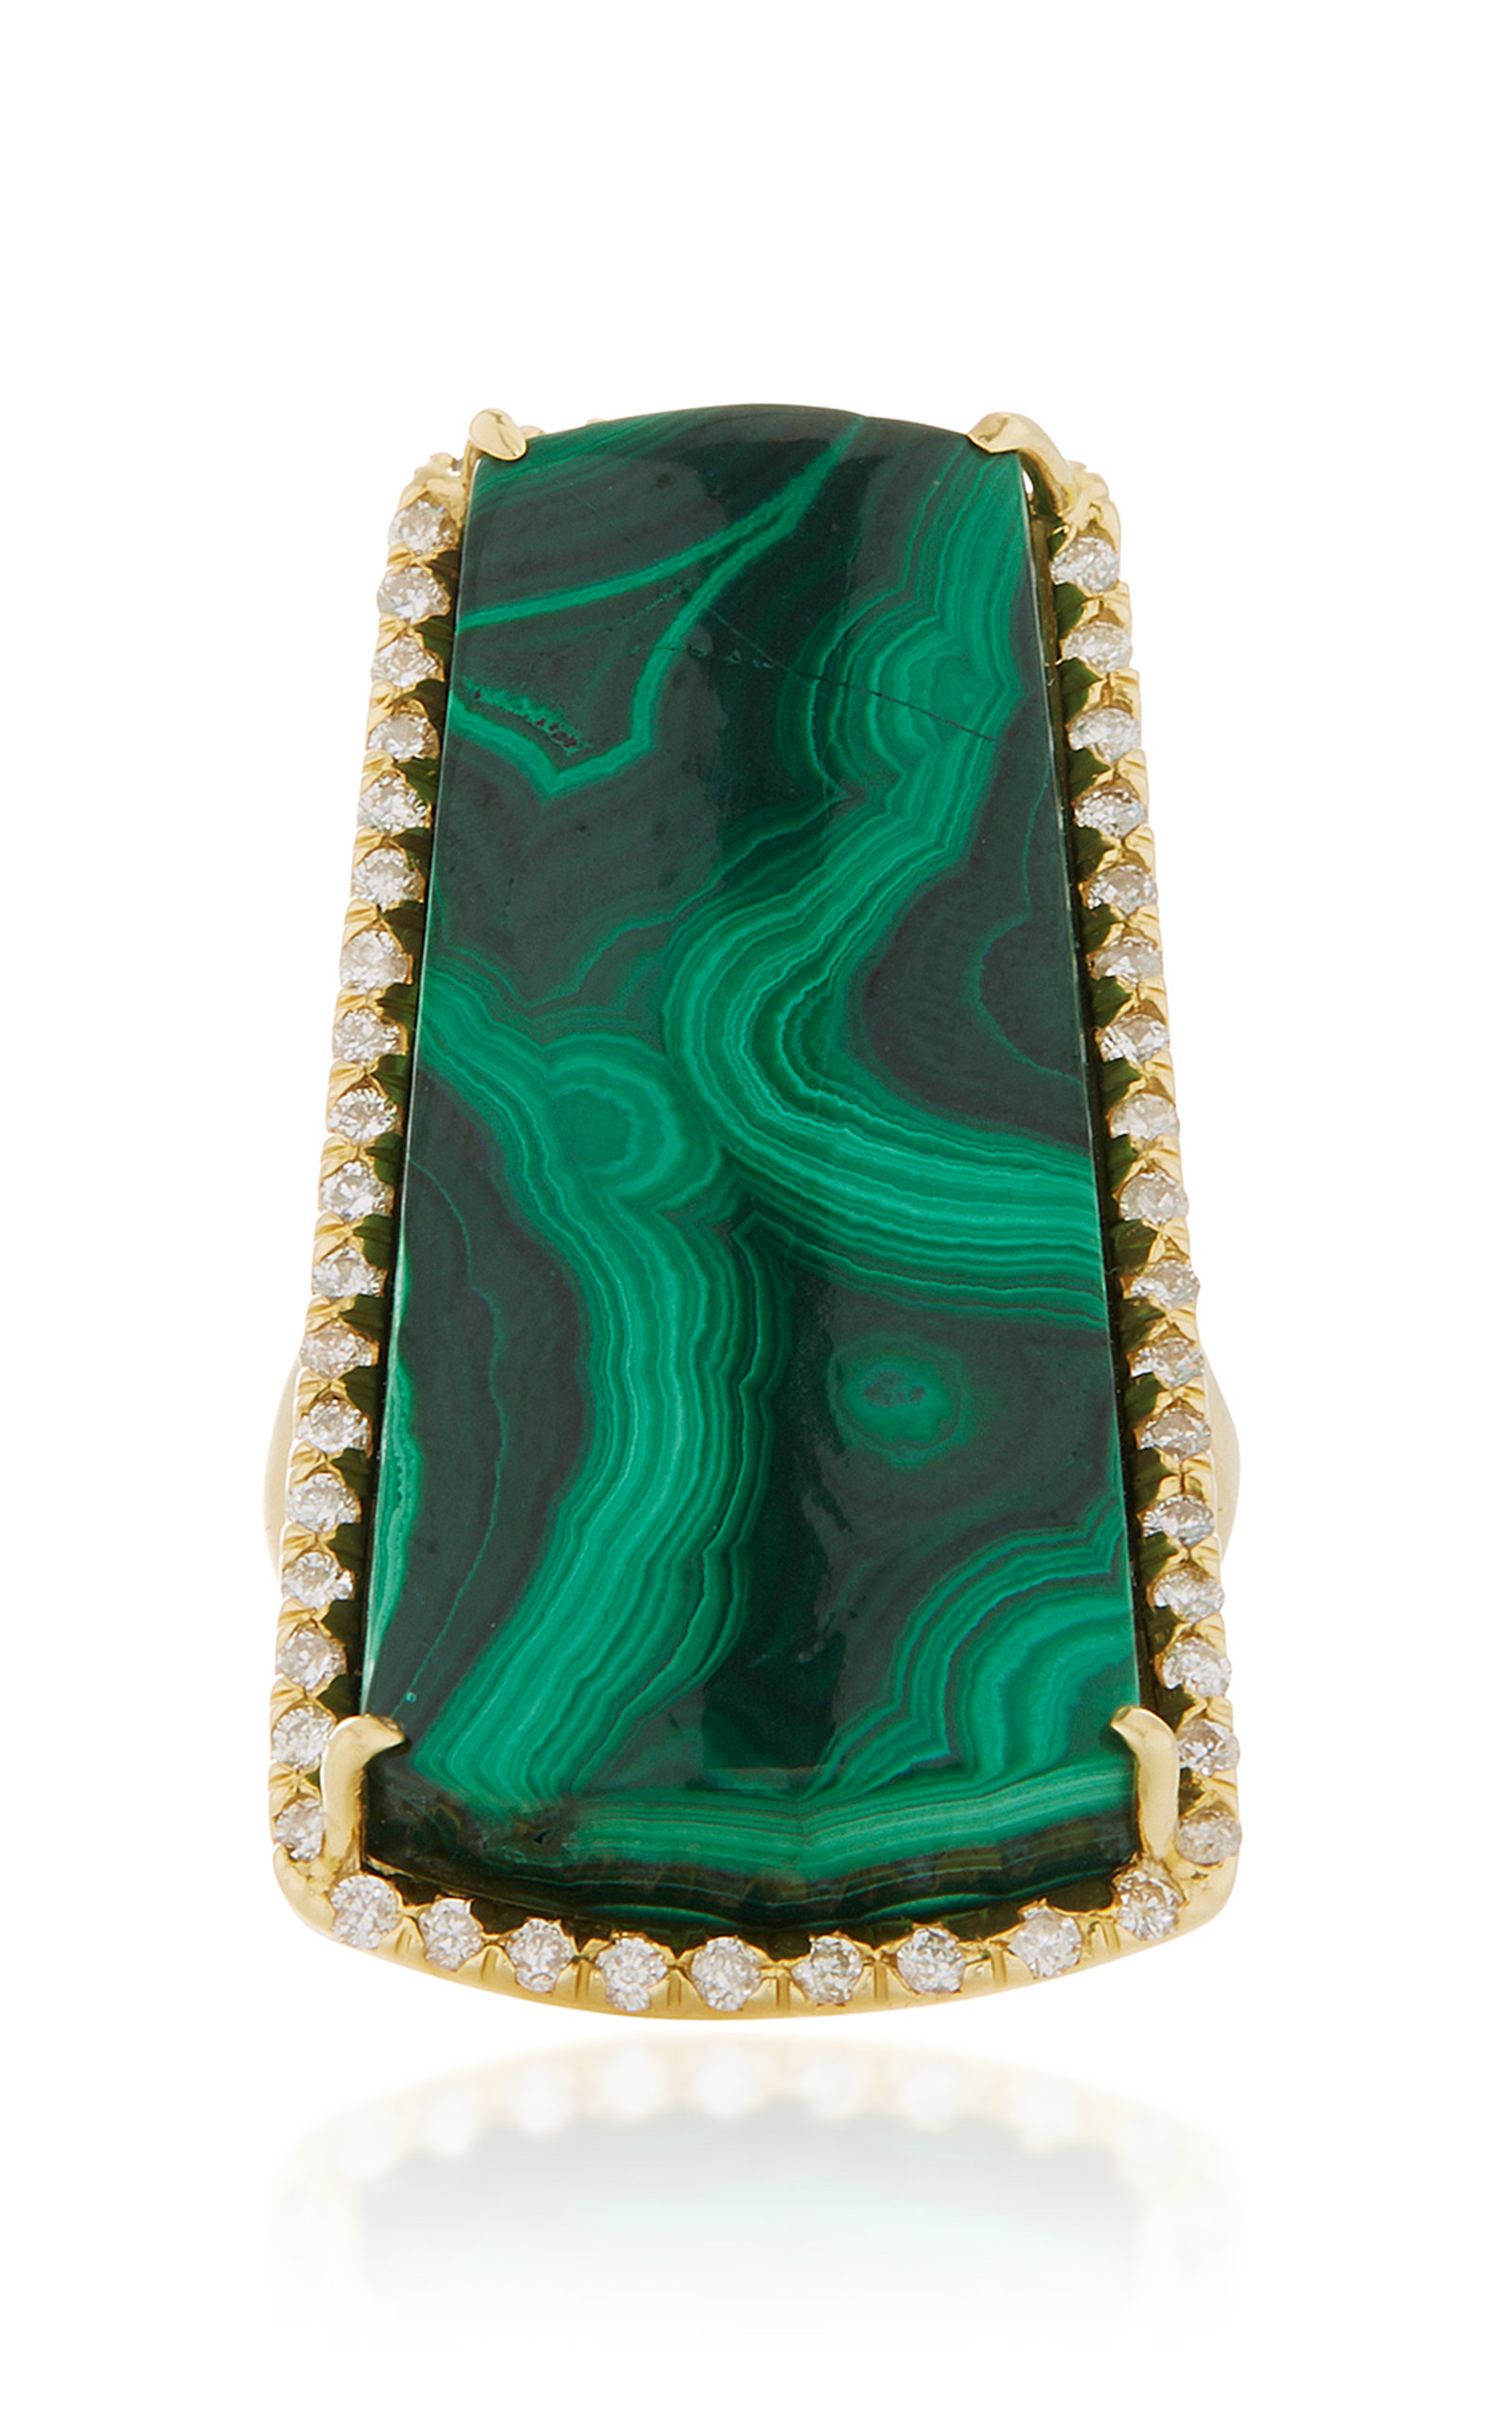 KIMBERLY MCDONALD ONE-OF-A-KIND MALACHITE RING WITH DIAMONDS SET IN 18K YELLOW GOLD